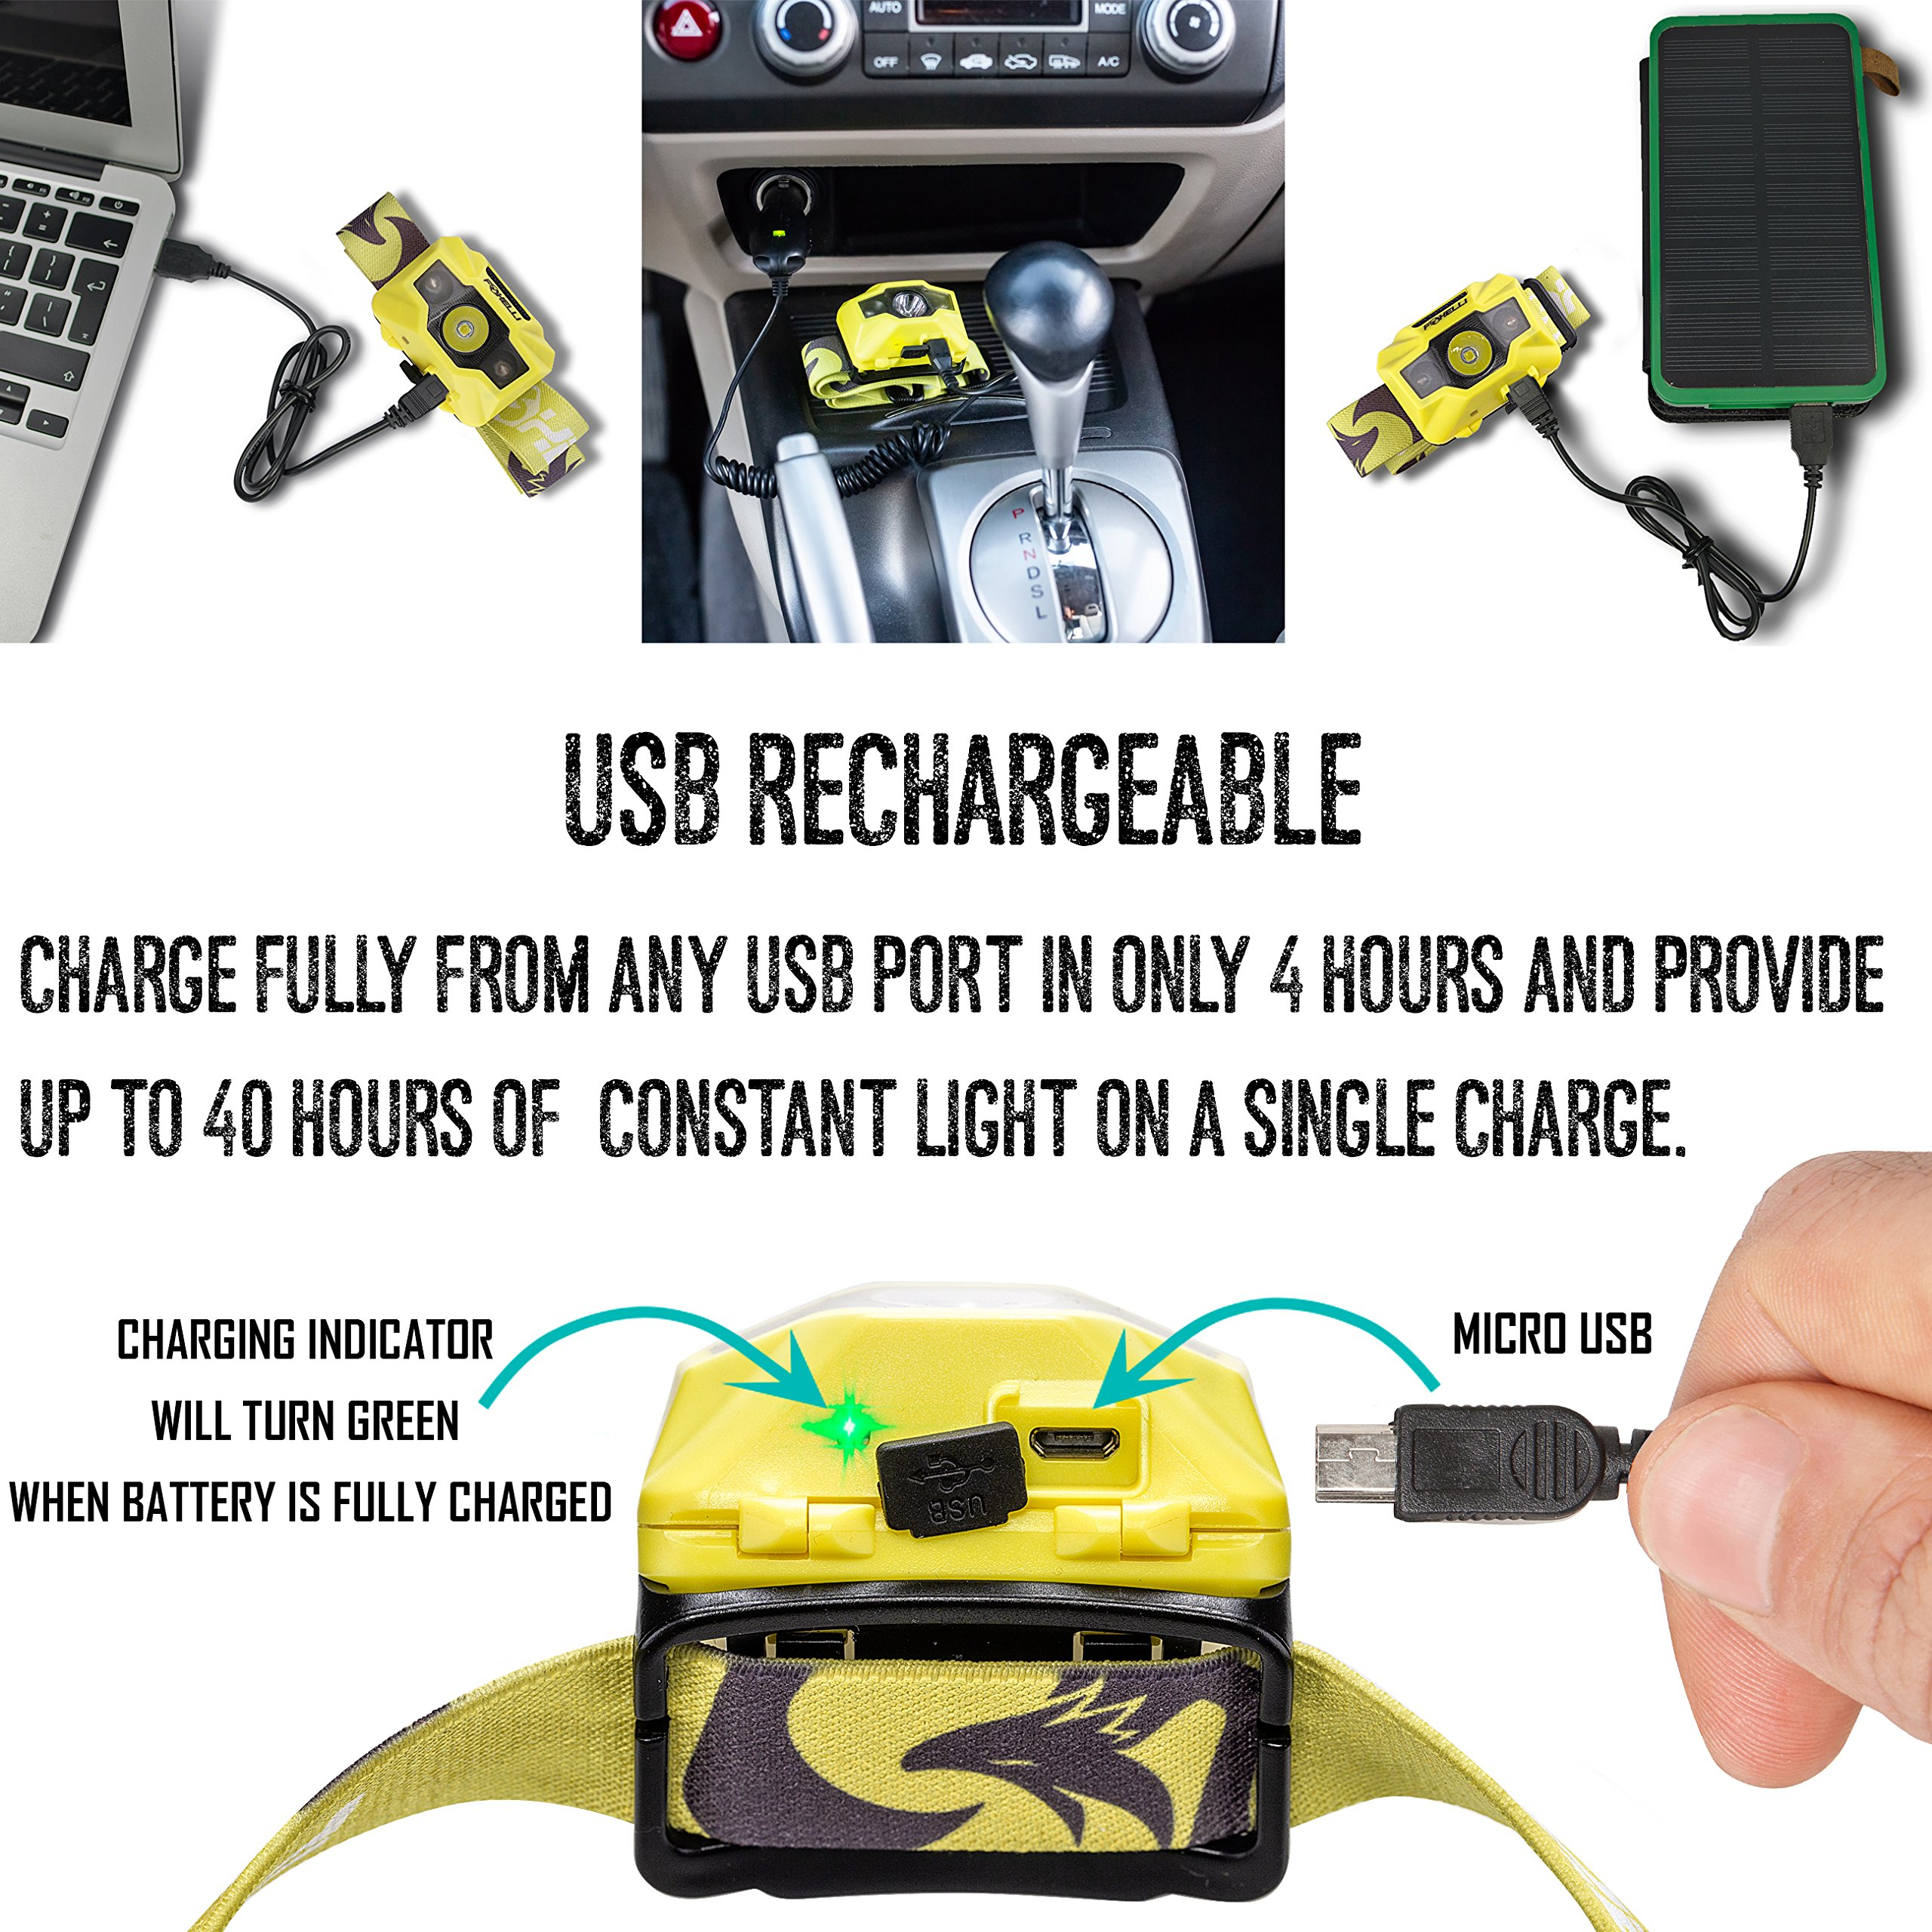 Foxelli USB Rechargeable Headlamp Flashlight 180 Lumen up to 40 Hour of Constant